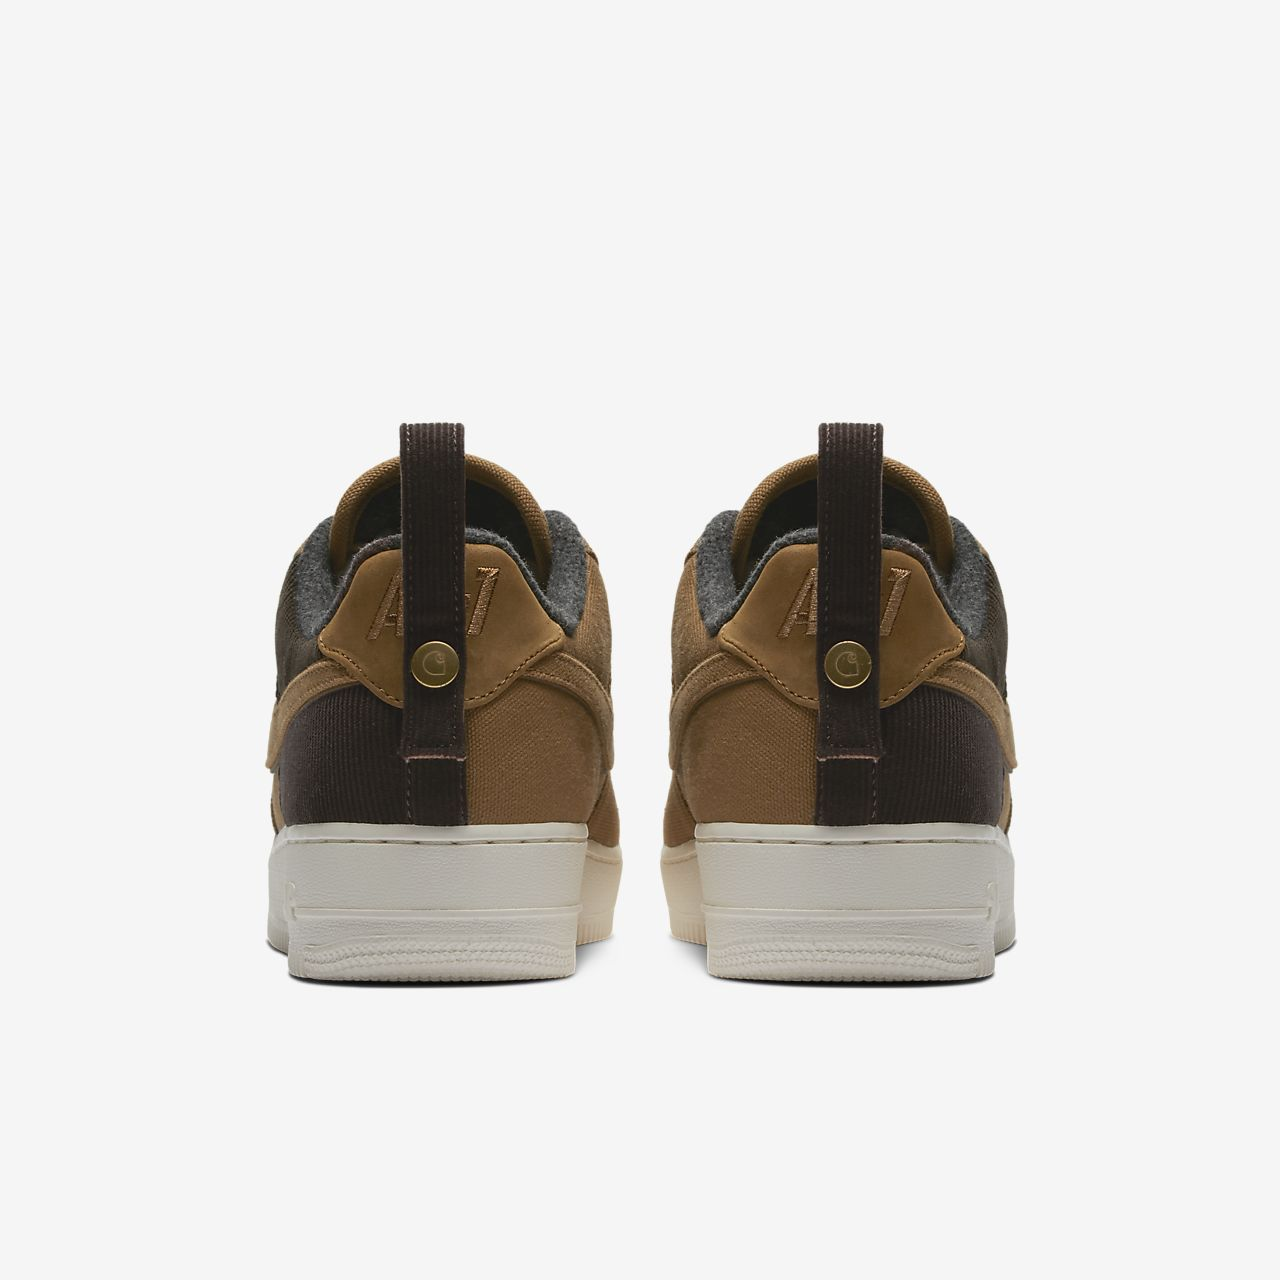 23d64dac2a Nike x Carhartt WIP Air Force 1 Men's Shoe